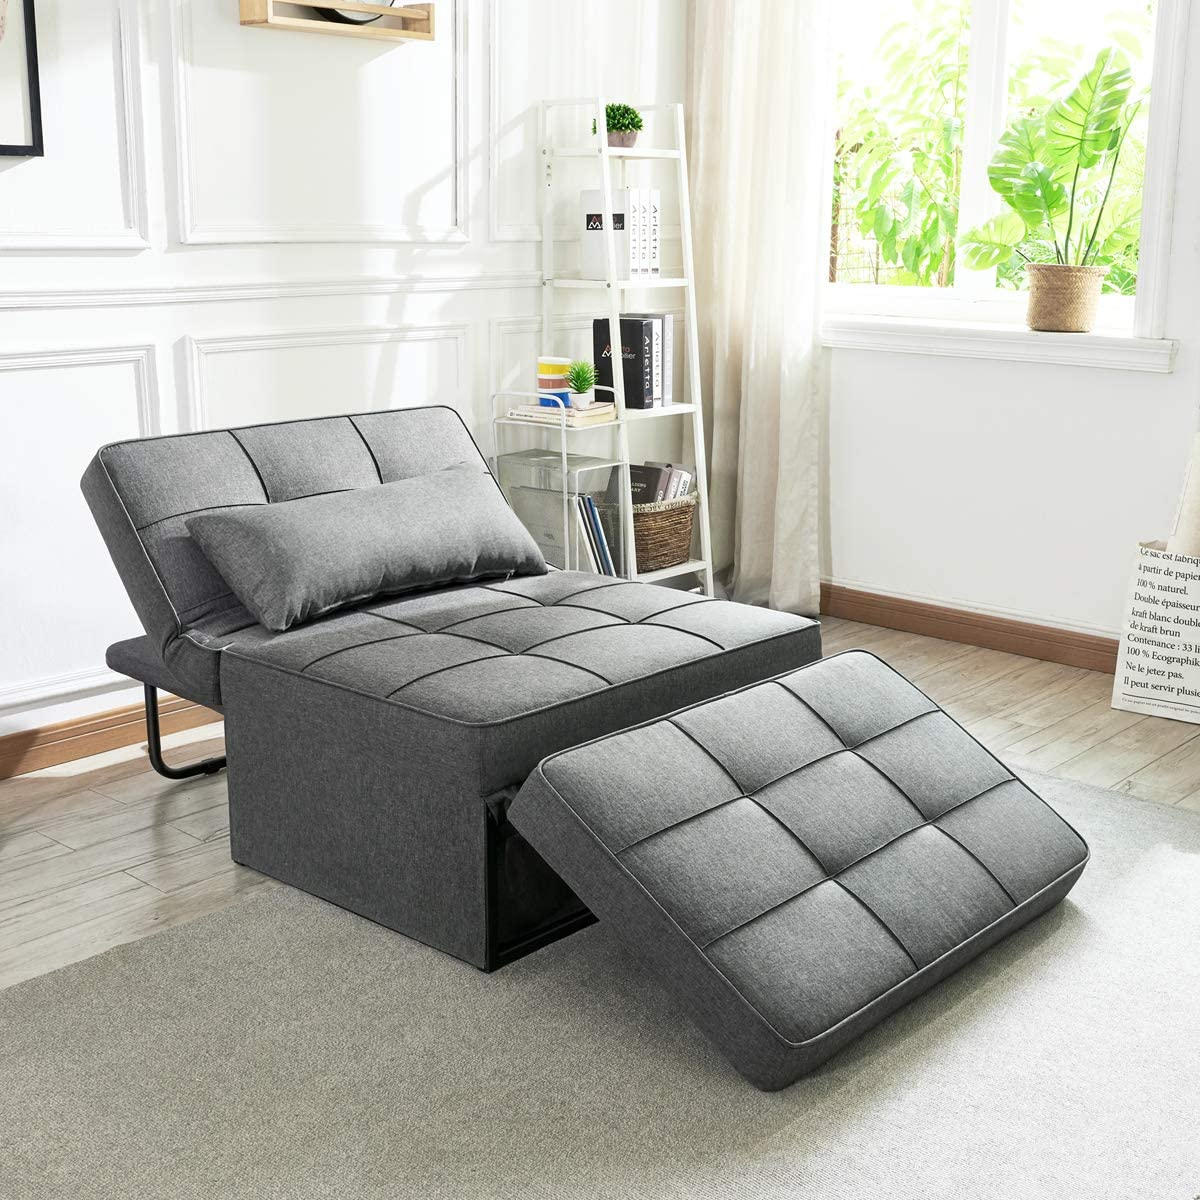 Vonanda 4-In-1 Convertible Chair Sofa Bed